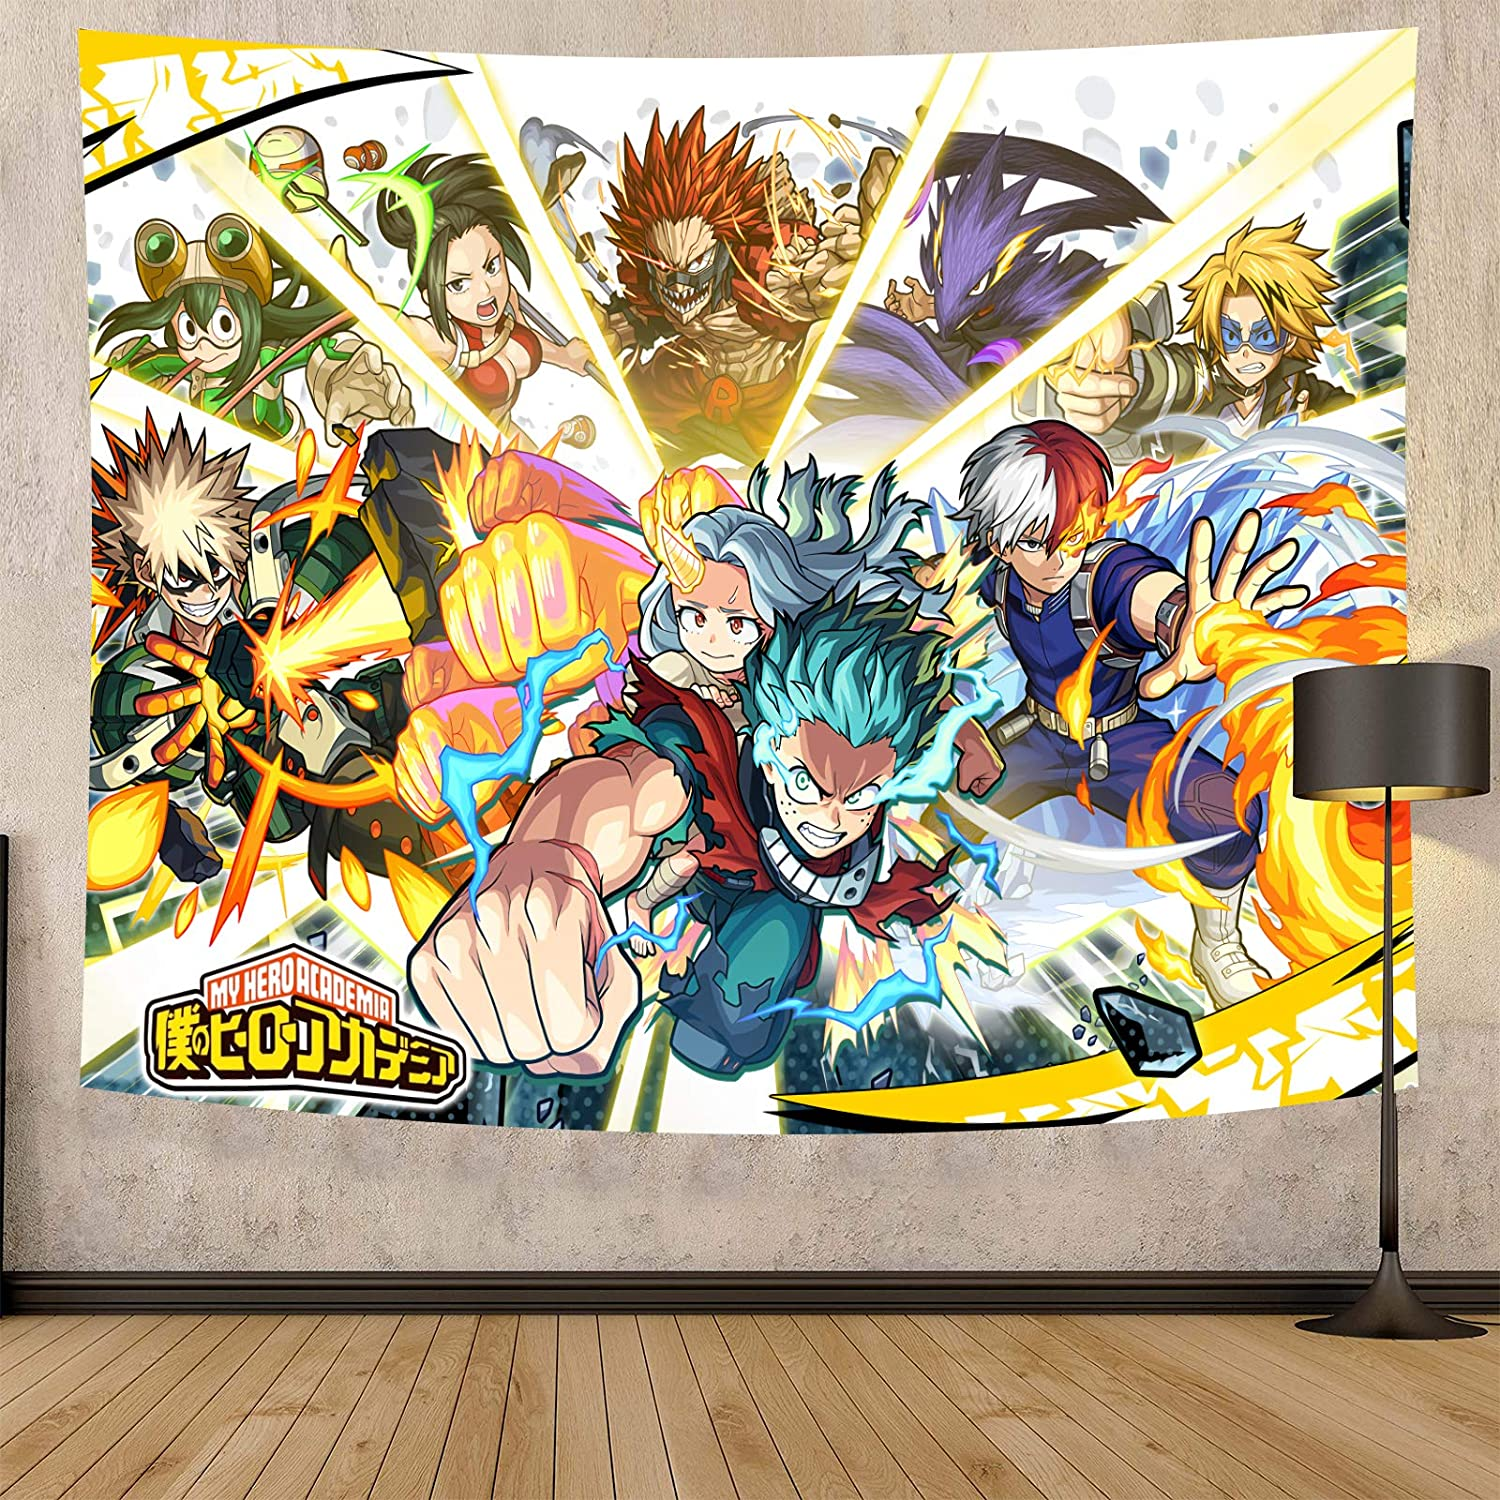 Timimo Anime Poster My Hero Academia-My Hero Academia Tapestry-Anime Tapestry-My Hero Academia Paintings-Can Be In The Living Room, Bedroom, 59 X 80 Inches, Posters And Anime Fans Favorite (Hero academia anime poster, 60 x 80in)